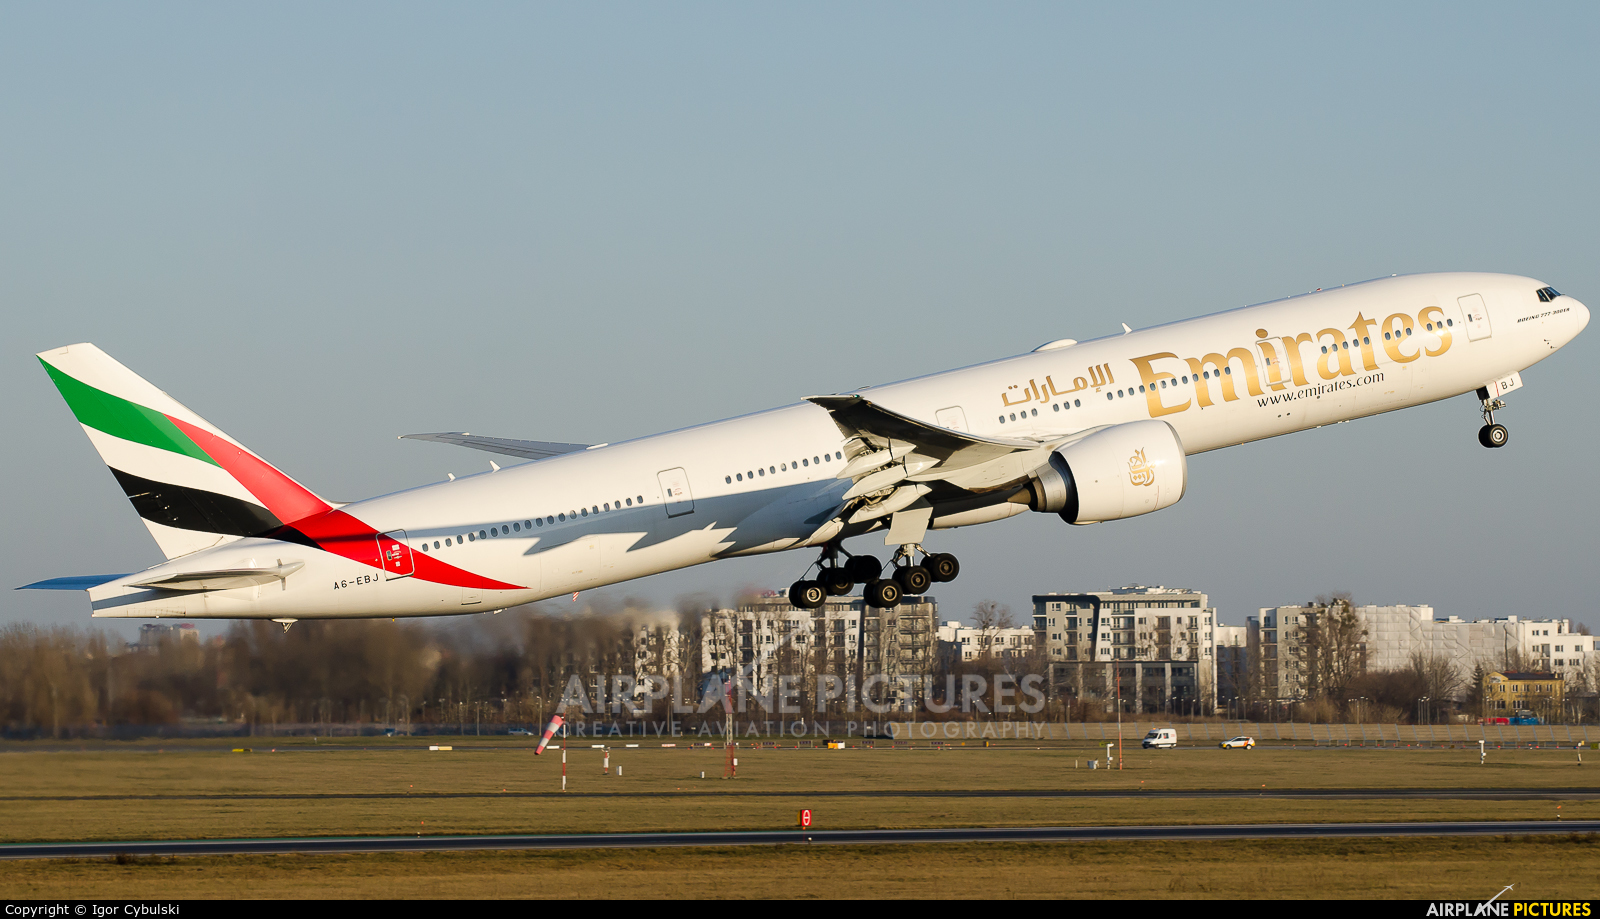 Emirates Airlines A6-EBJ aircraft at Warsaw - Frederic Chopin